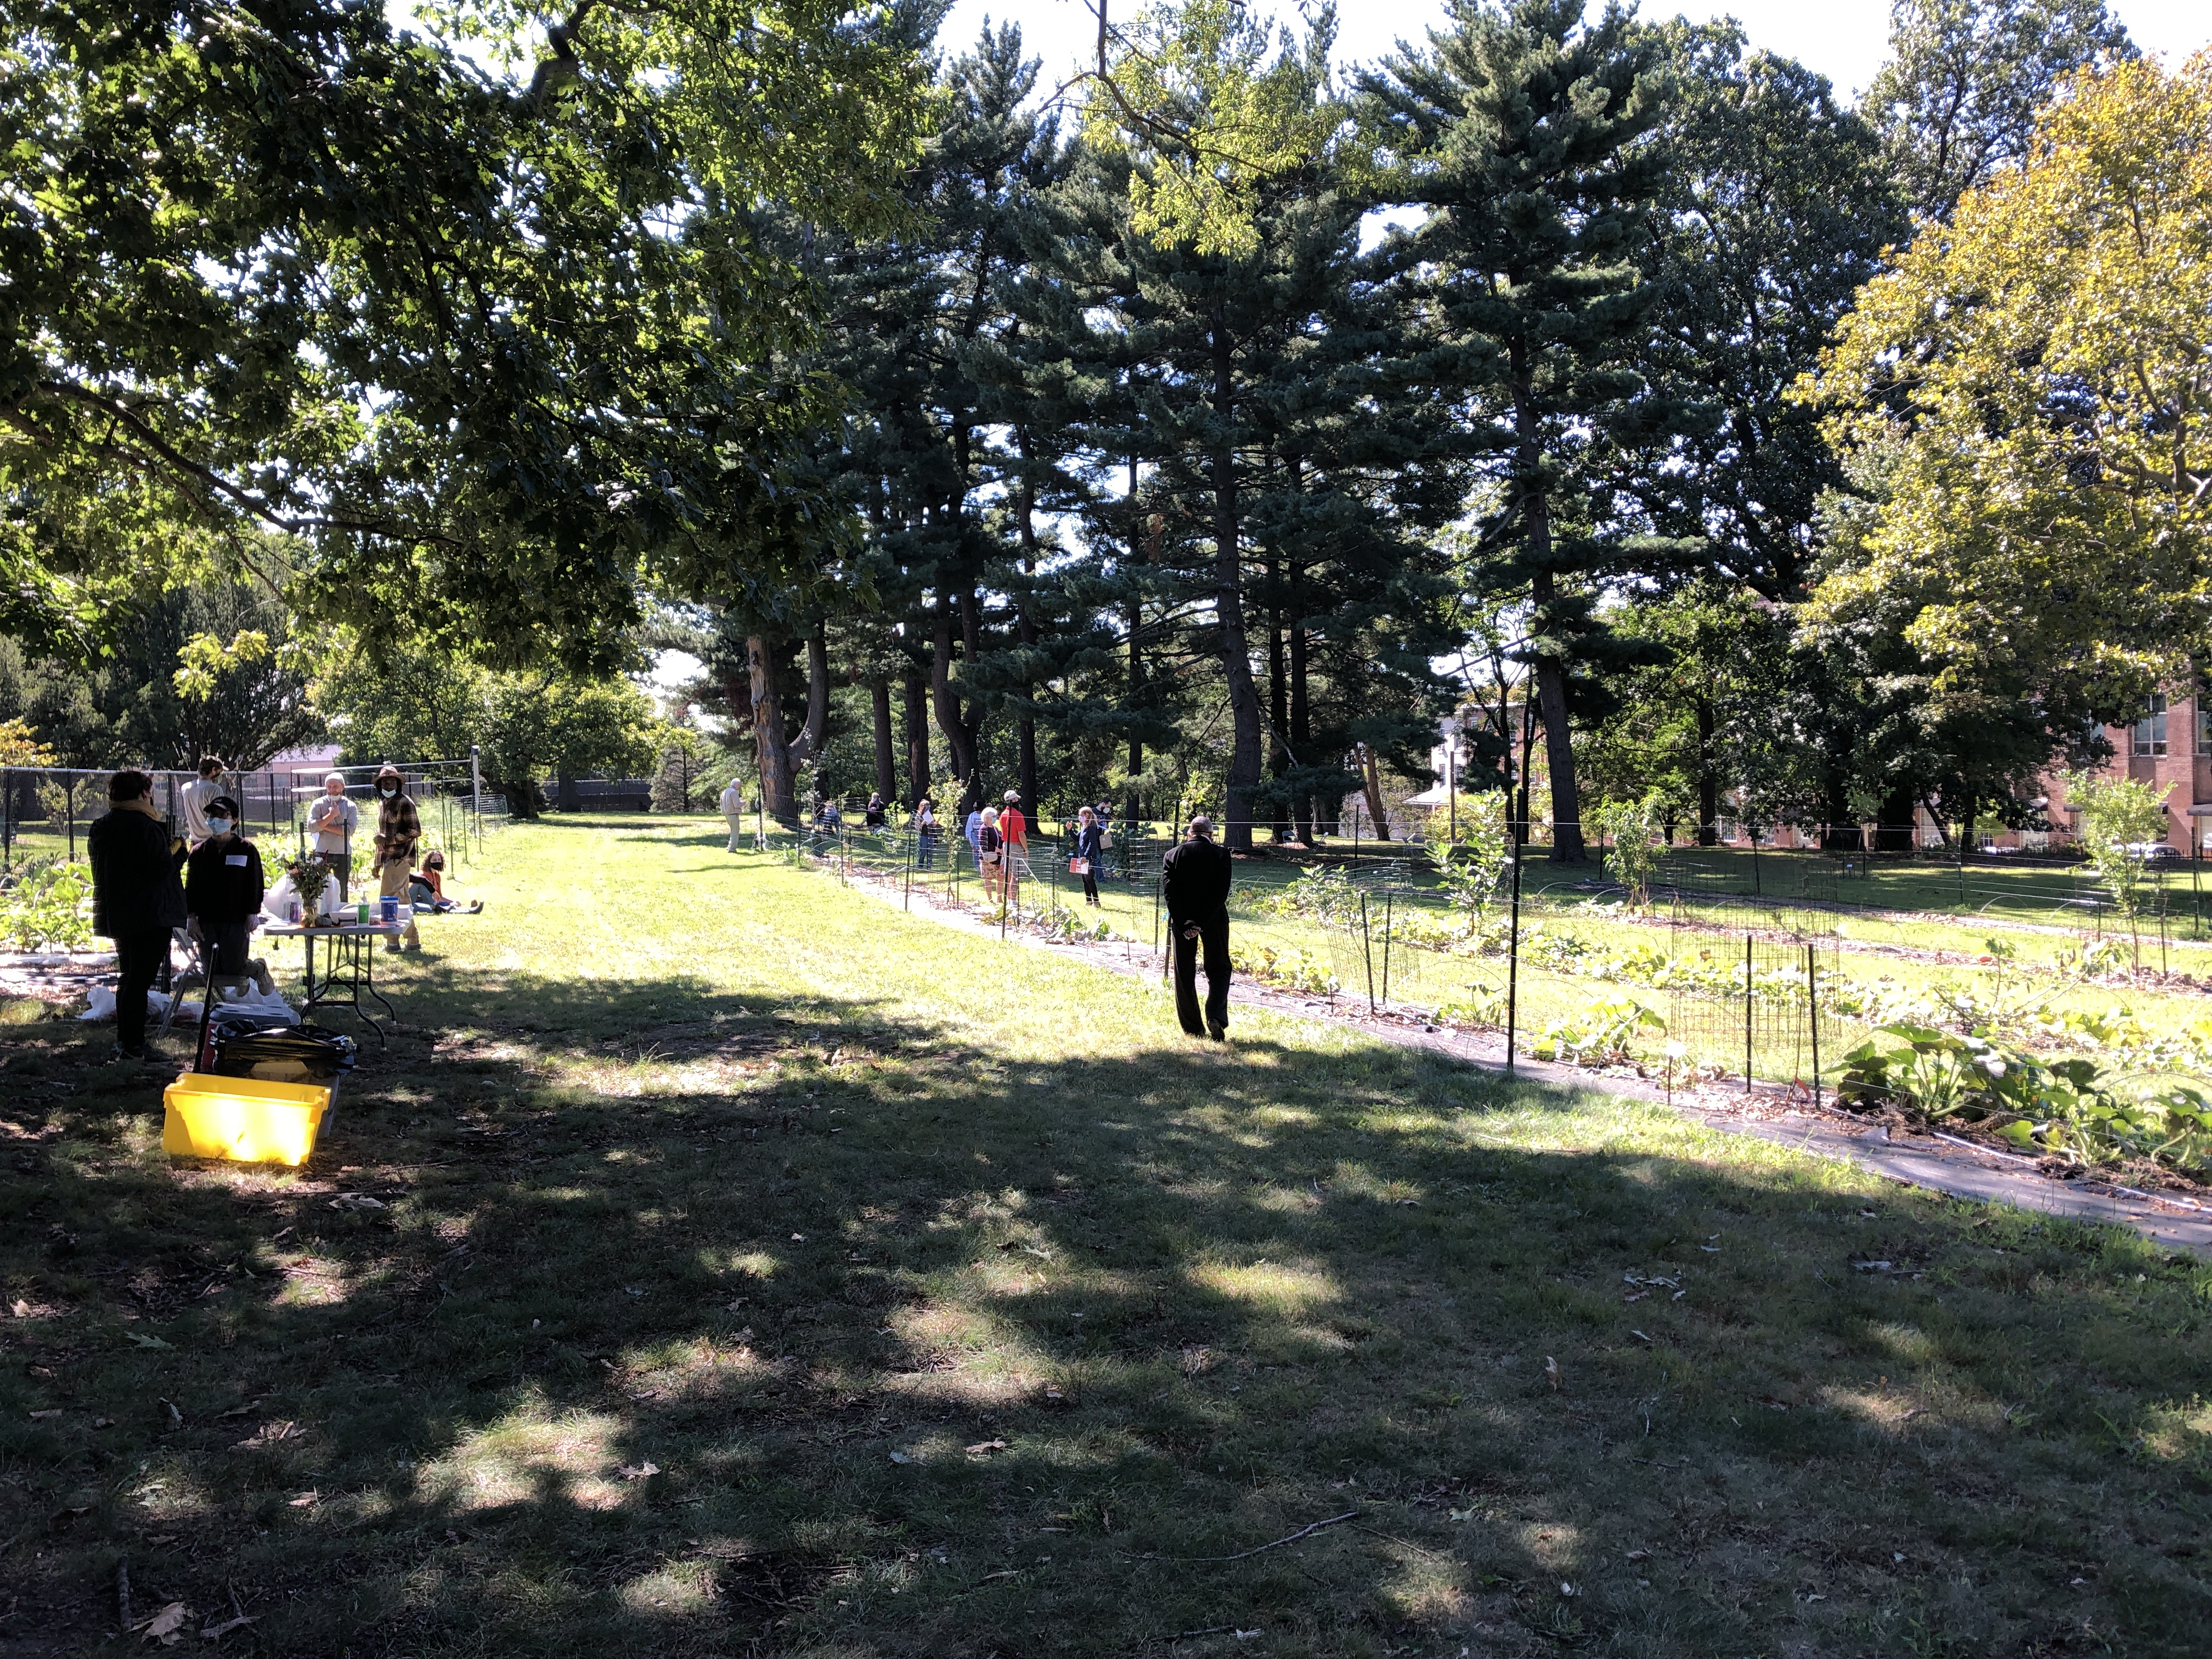 A look at the POP Learning orchard on a sunny day in the fall. The rows of new trees are dwarfed by a grouping of giant pines int he background. A sparse gathering of people, alone or in small groups, examine the plants.